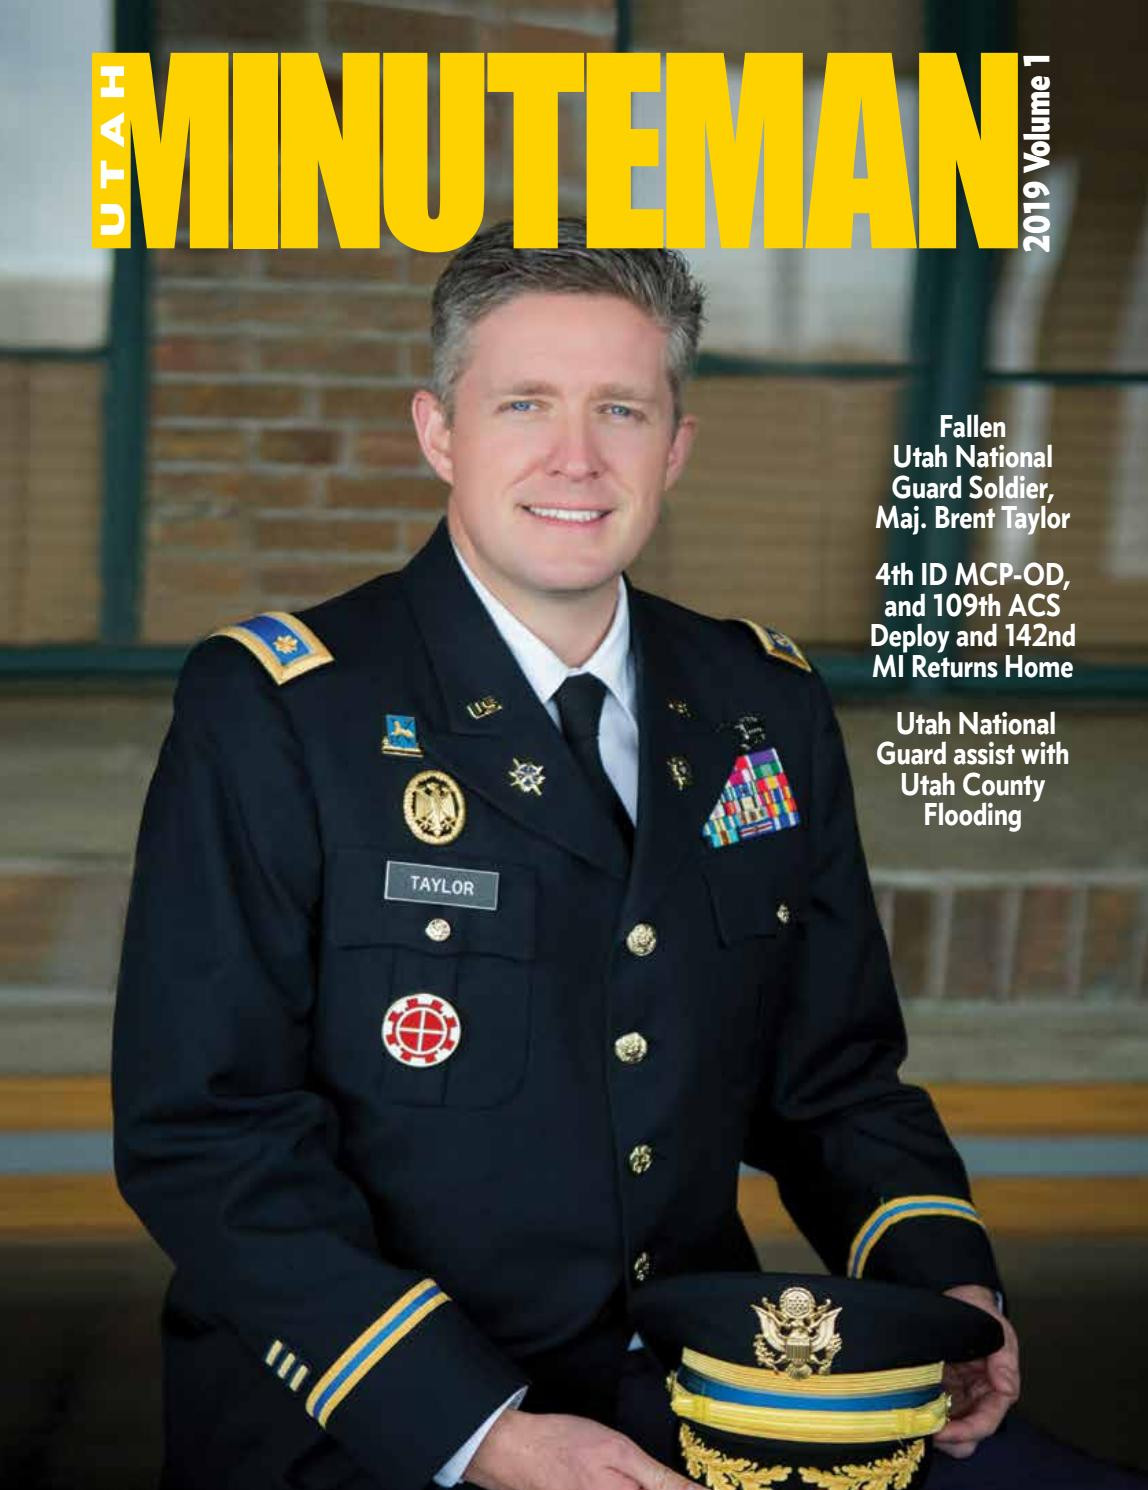 Utah Department Of Administrative Services Easy Utah Minuteman 2019 Vol 1 by Utng Pao issuu